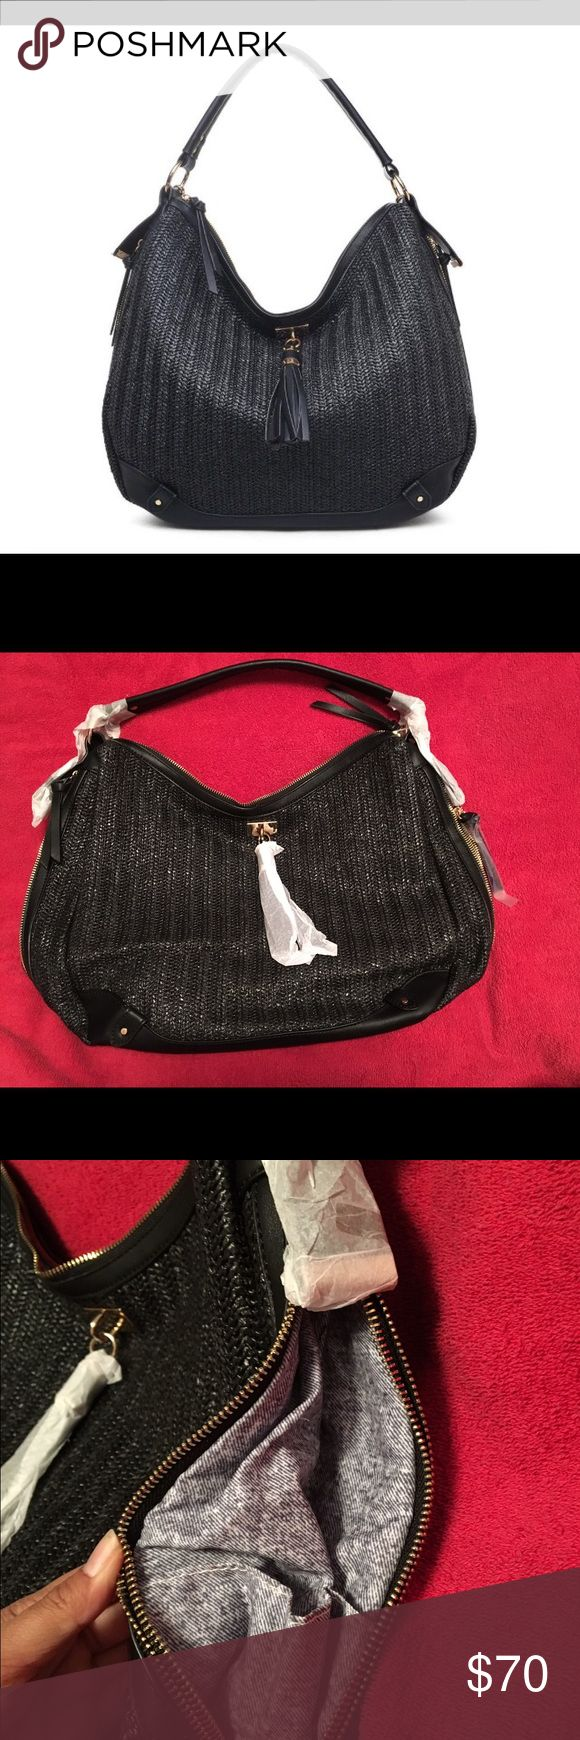 "Urban Expressions Oasis Bag Slightly slouchy handbag, single hand strap, detachable adjustable shoulder strap. 15.13""L x 5.88""W x 13.38""H. New with tags & cover bag. Please let me know if you have any questions or need more photos. Will take OFFERS. Thank you! Urban Expressions Bags Shoulder Bags"